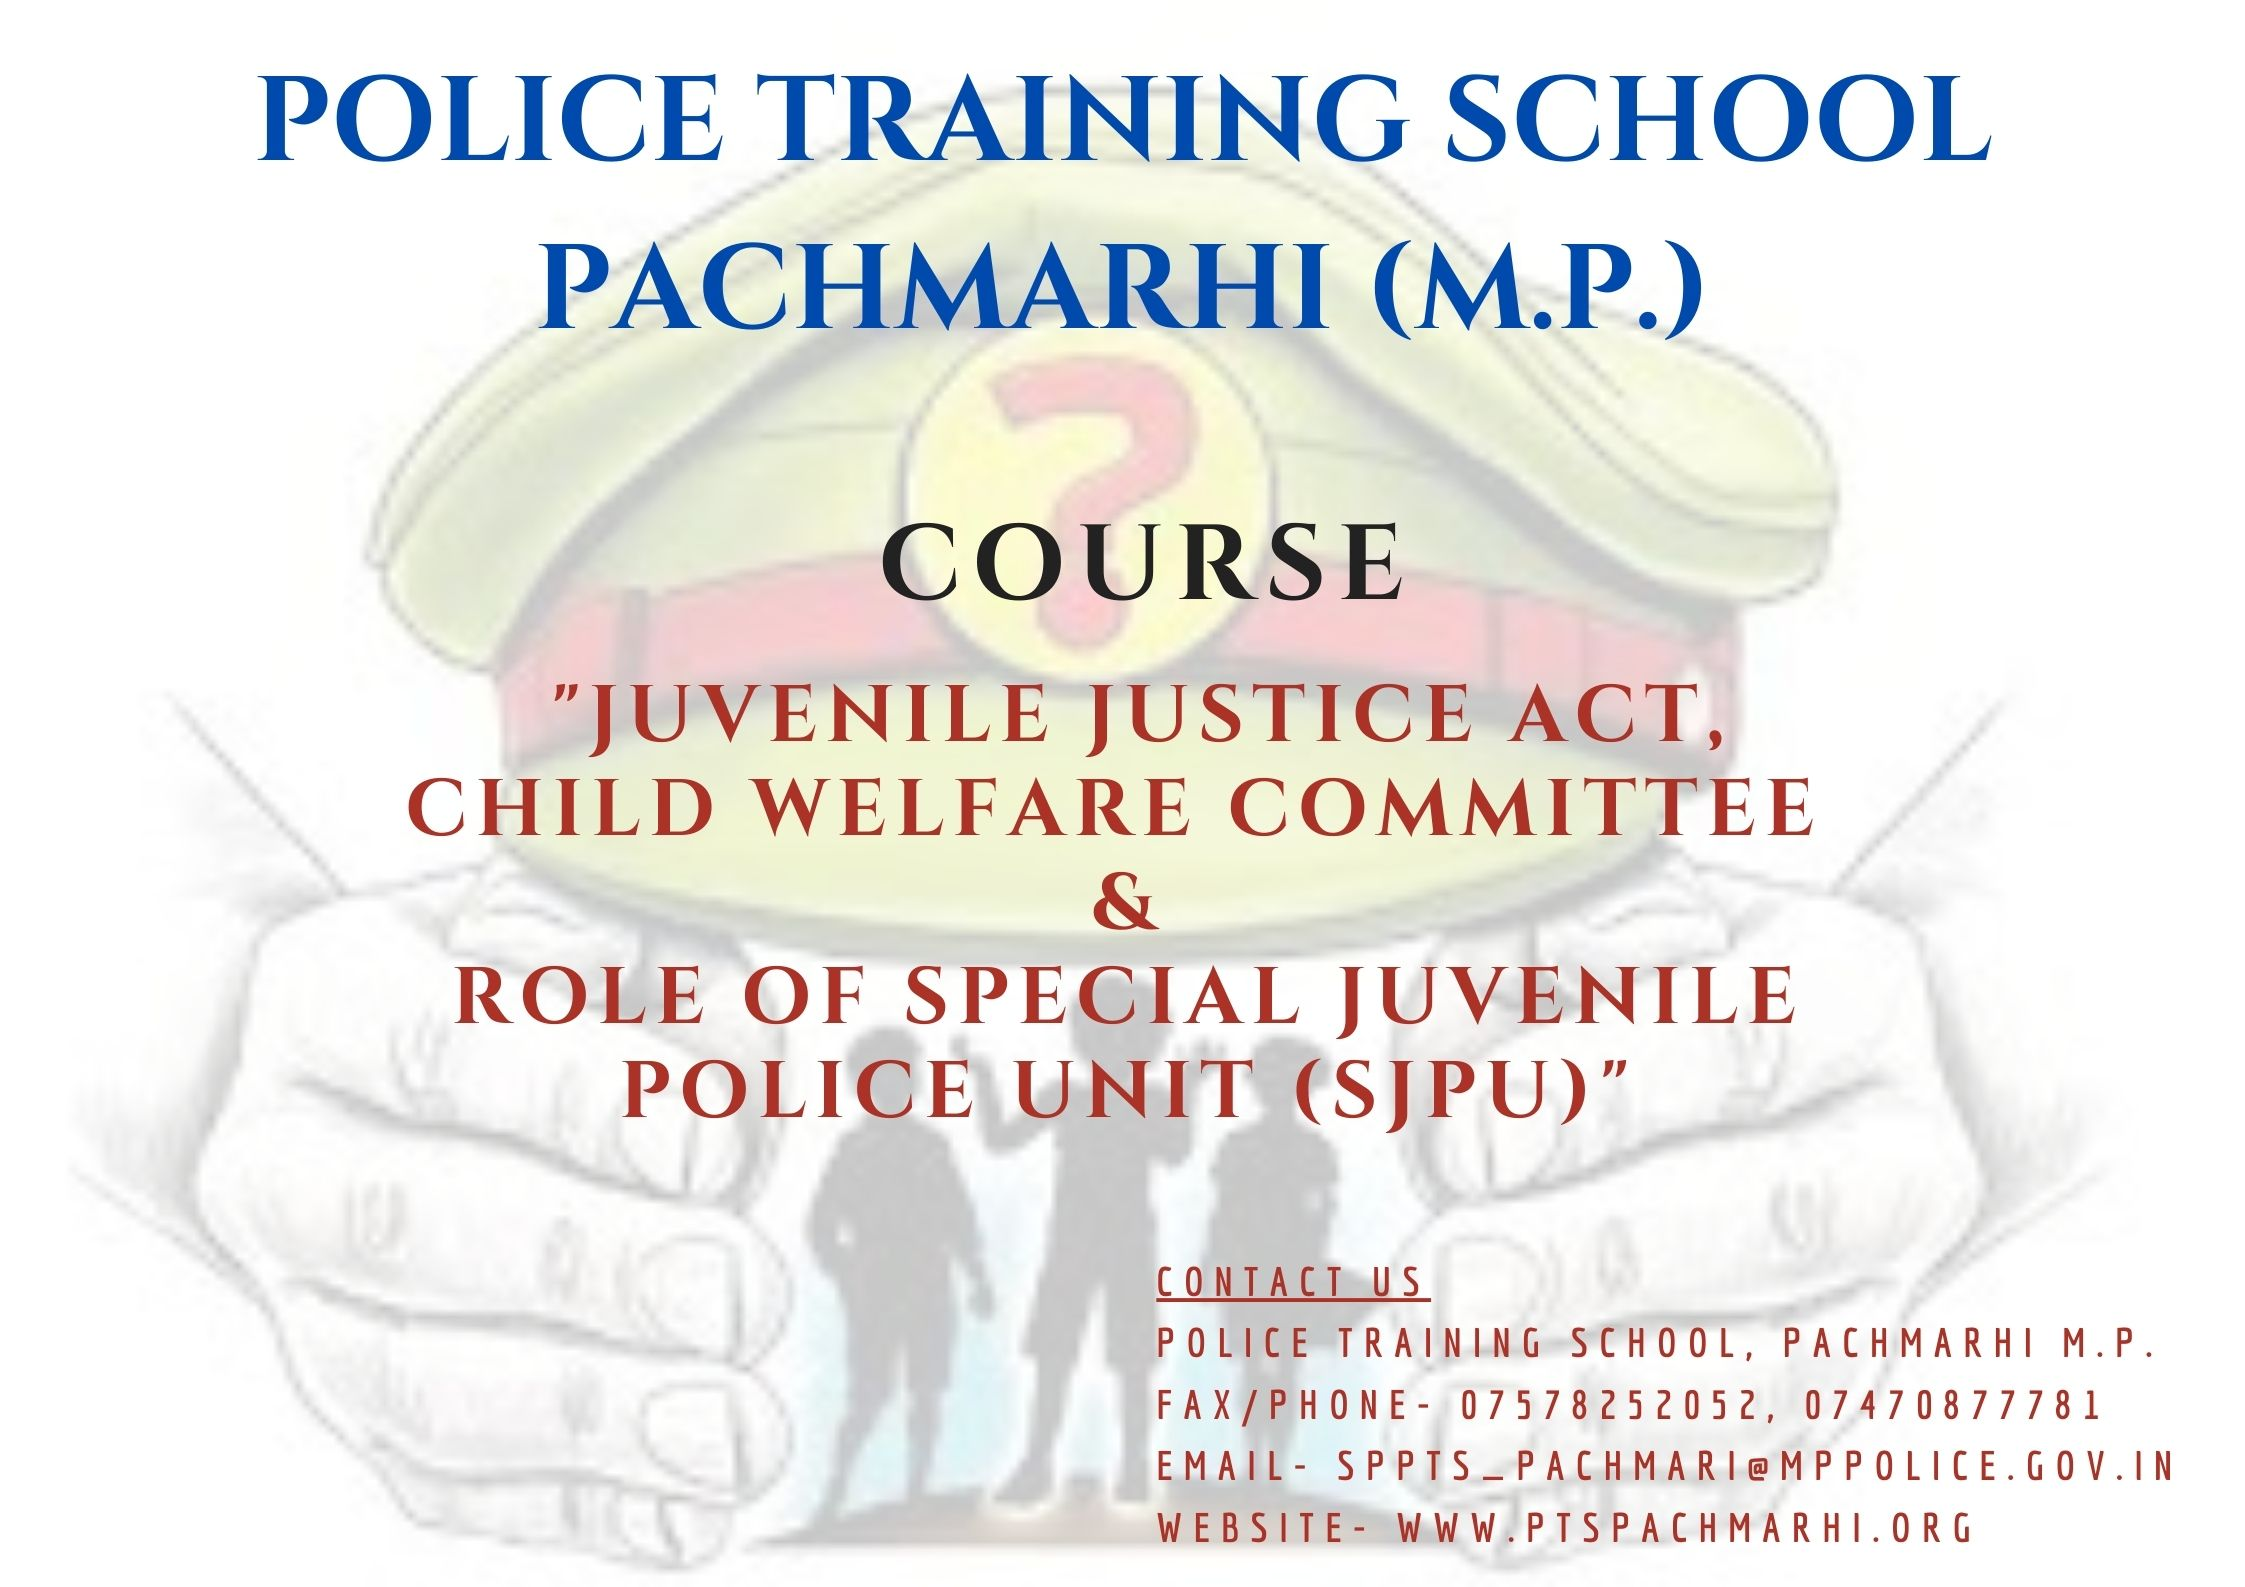 Juvenile Justice Act 2015, CWC & Role of SJPU